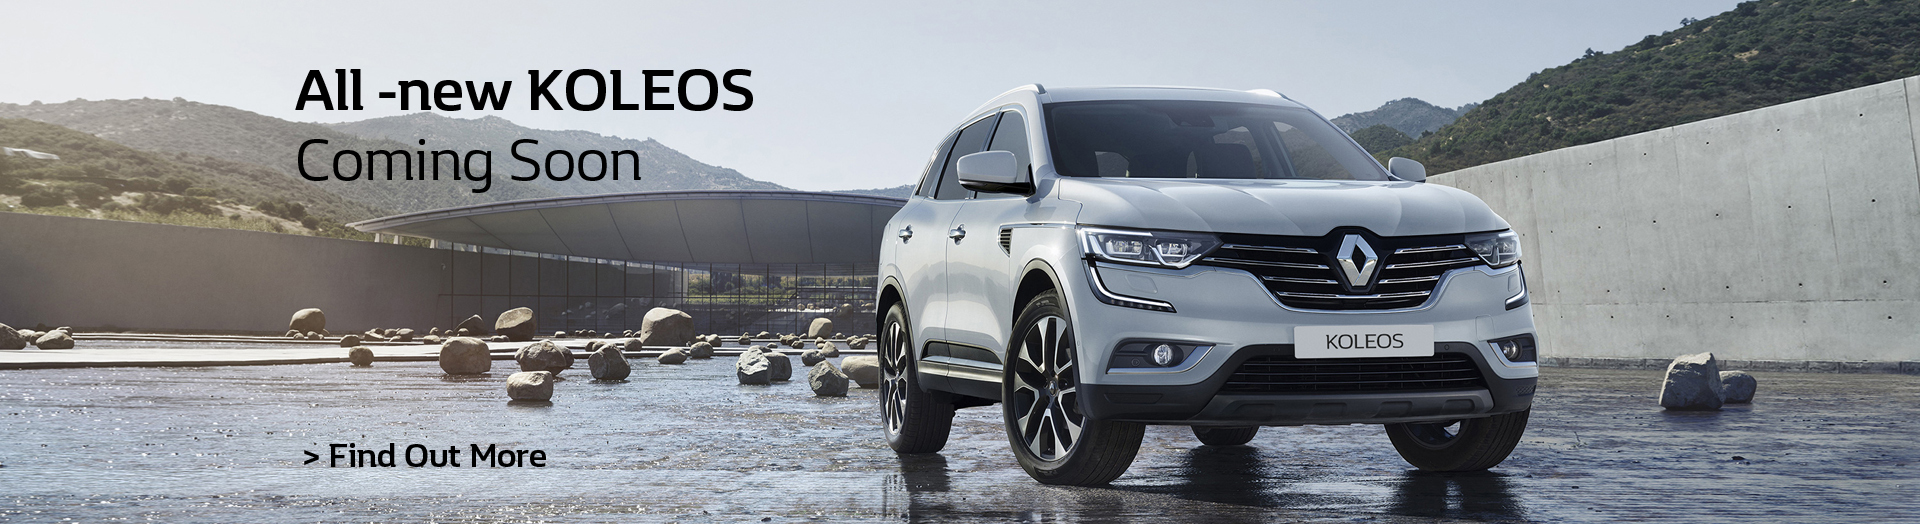 All-New Koleos Coming Soon